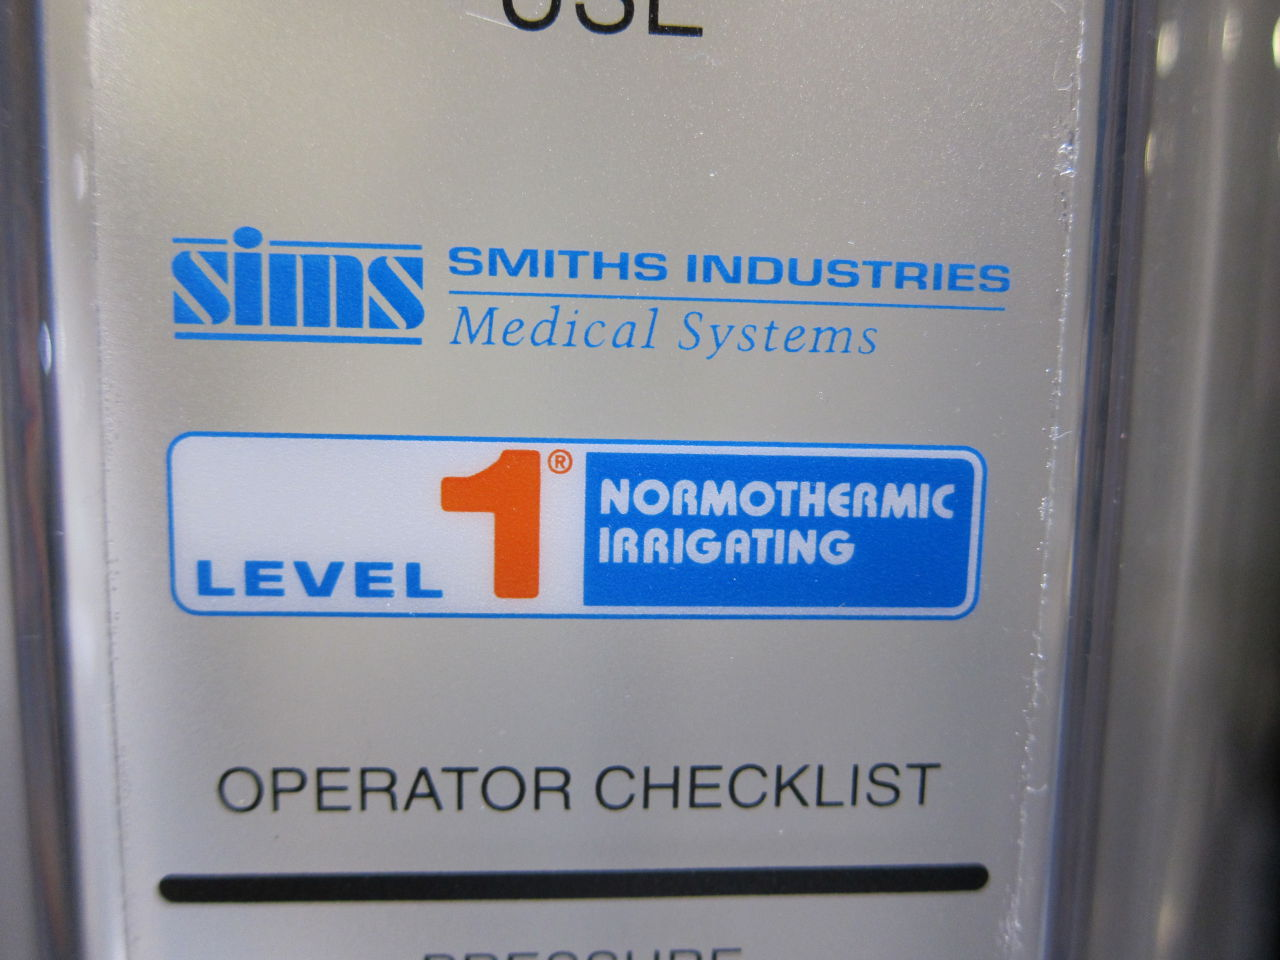 SIMS Hi-2 Level 1 Normothermic Irrigating Pressure Chamber IV/Infusion Set